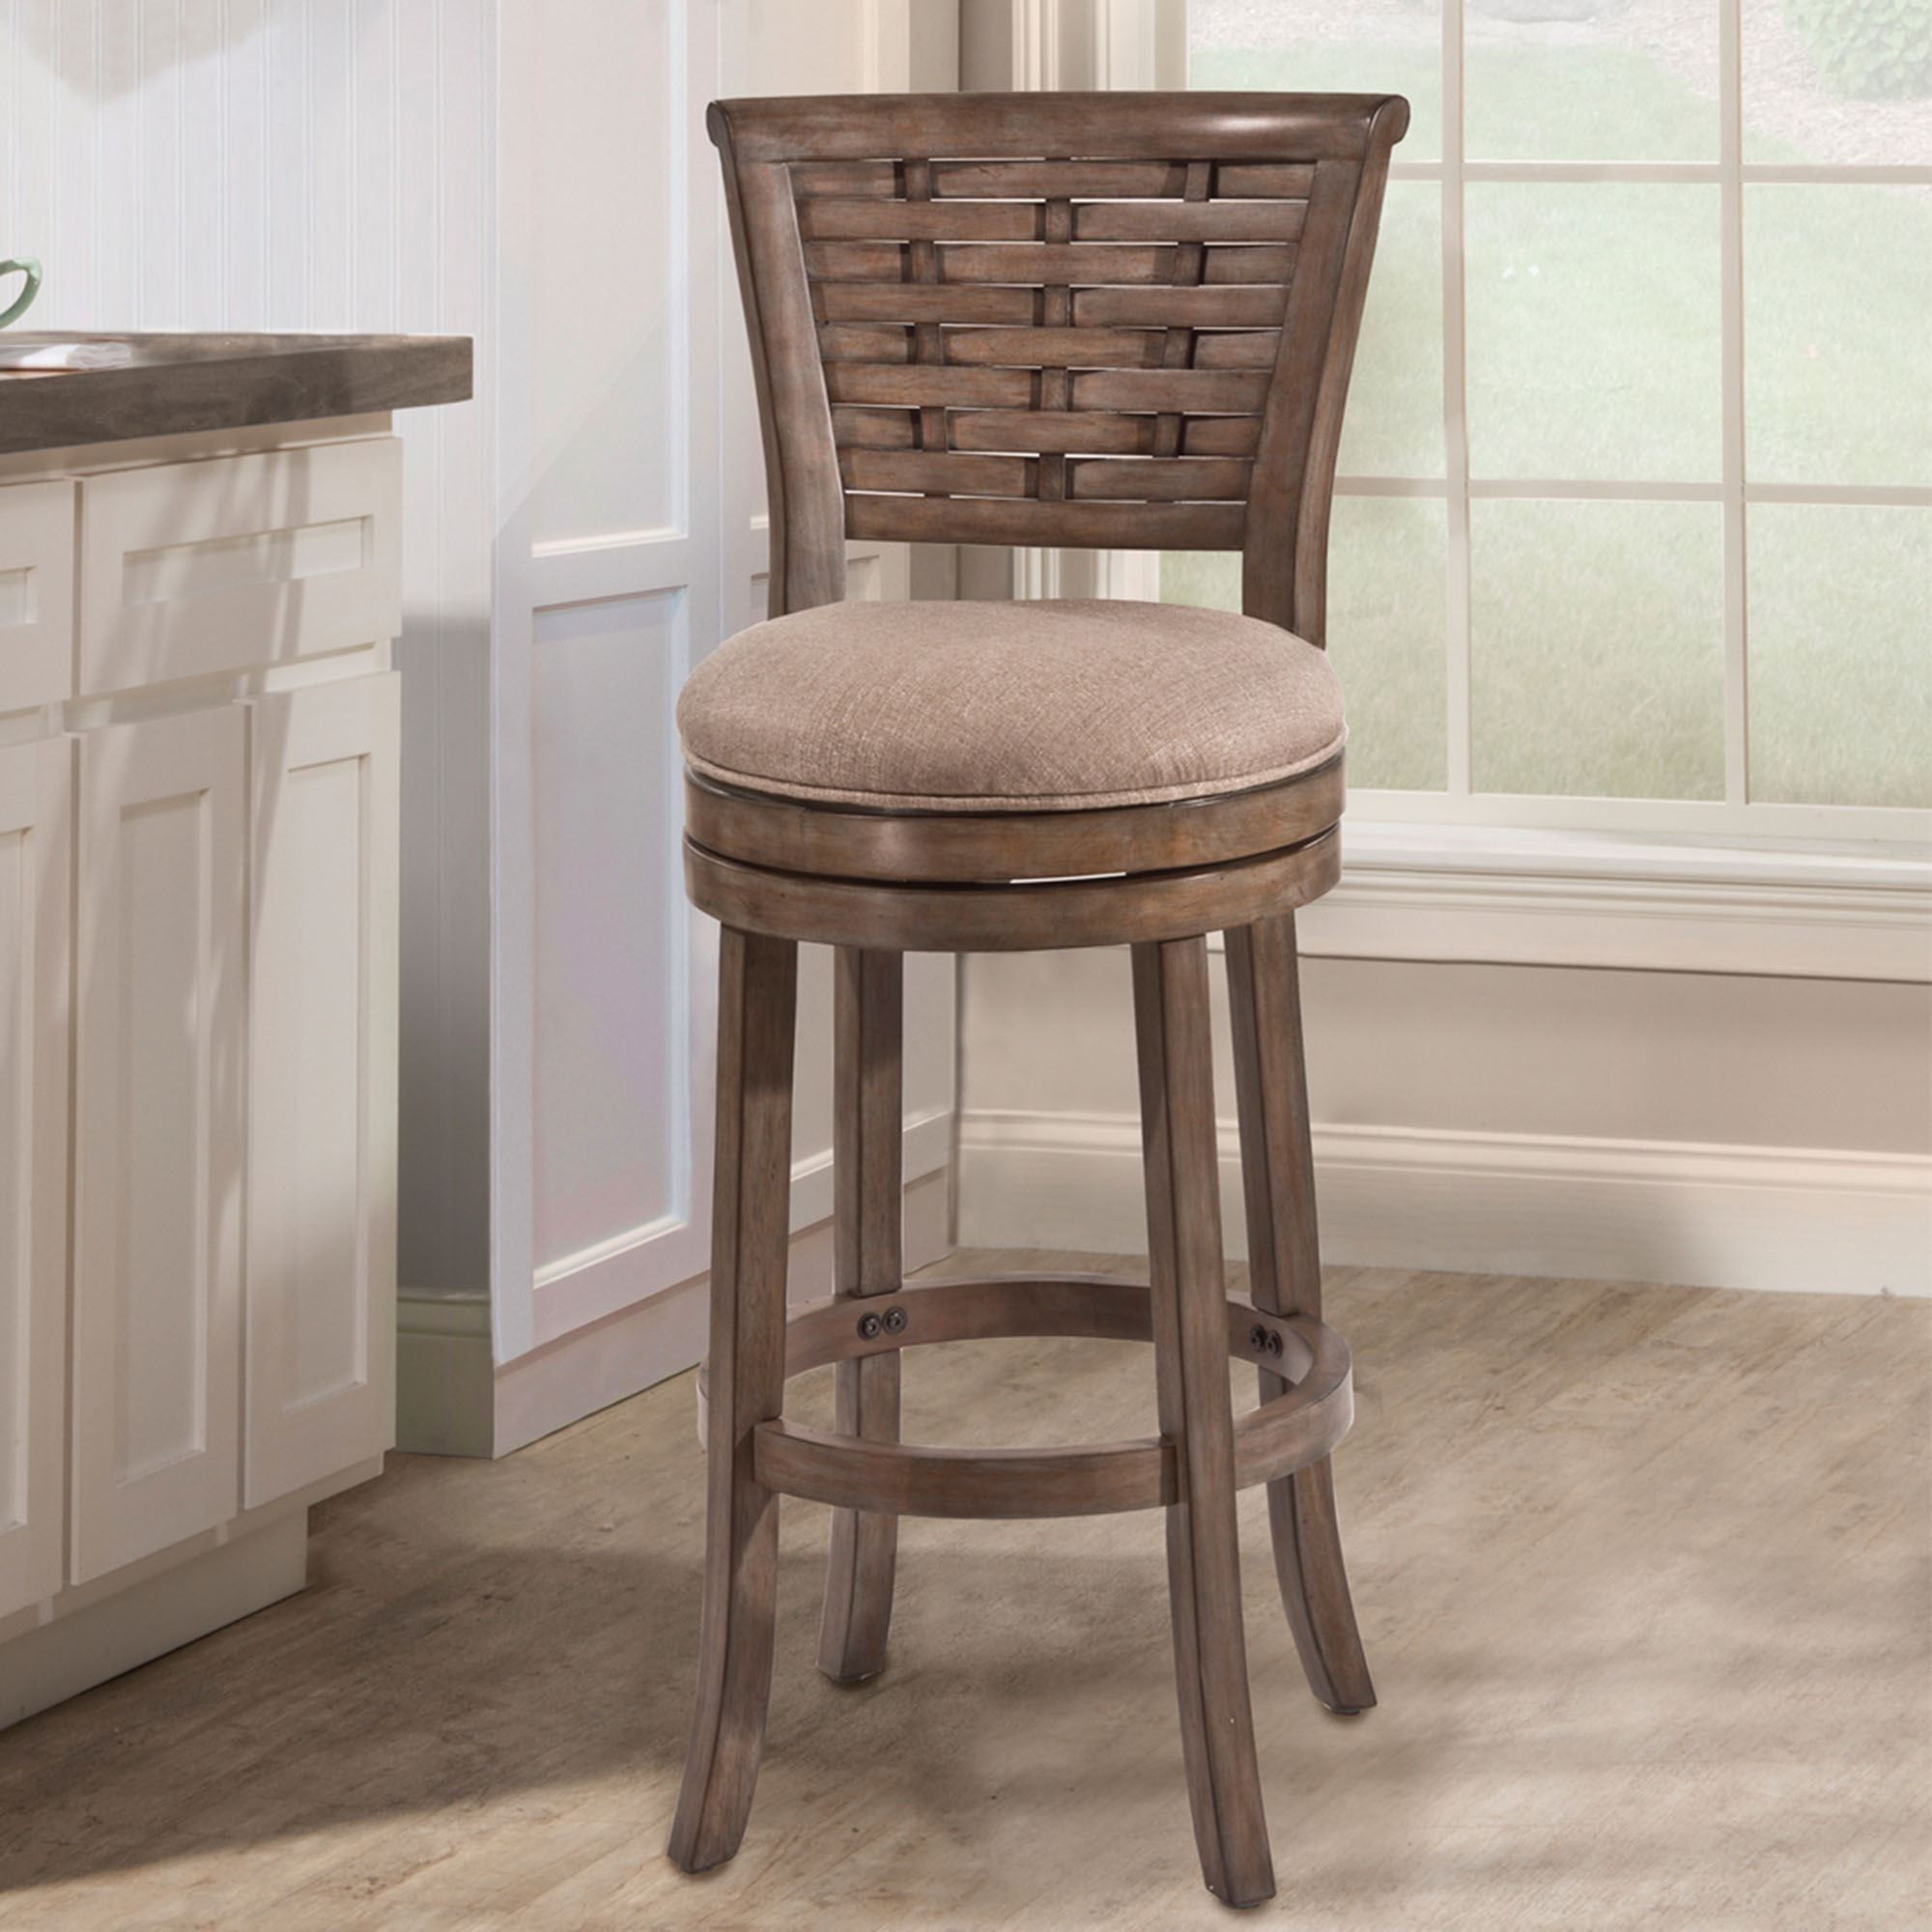 Emmett Upholstered Wooden Swivel Bar Or Counter Stool